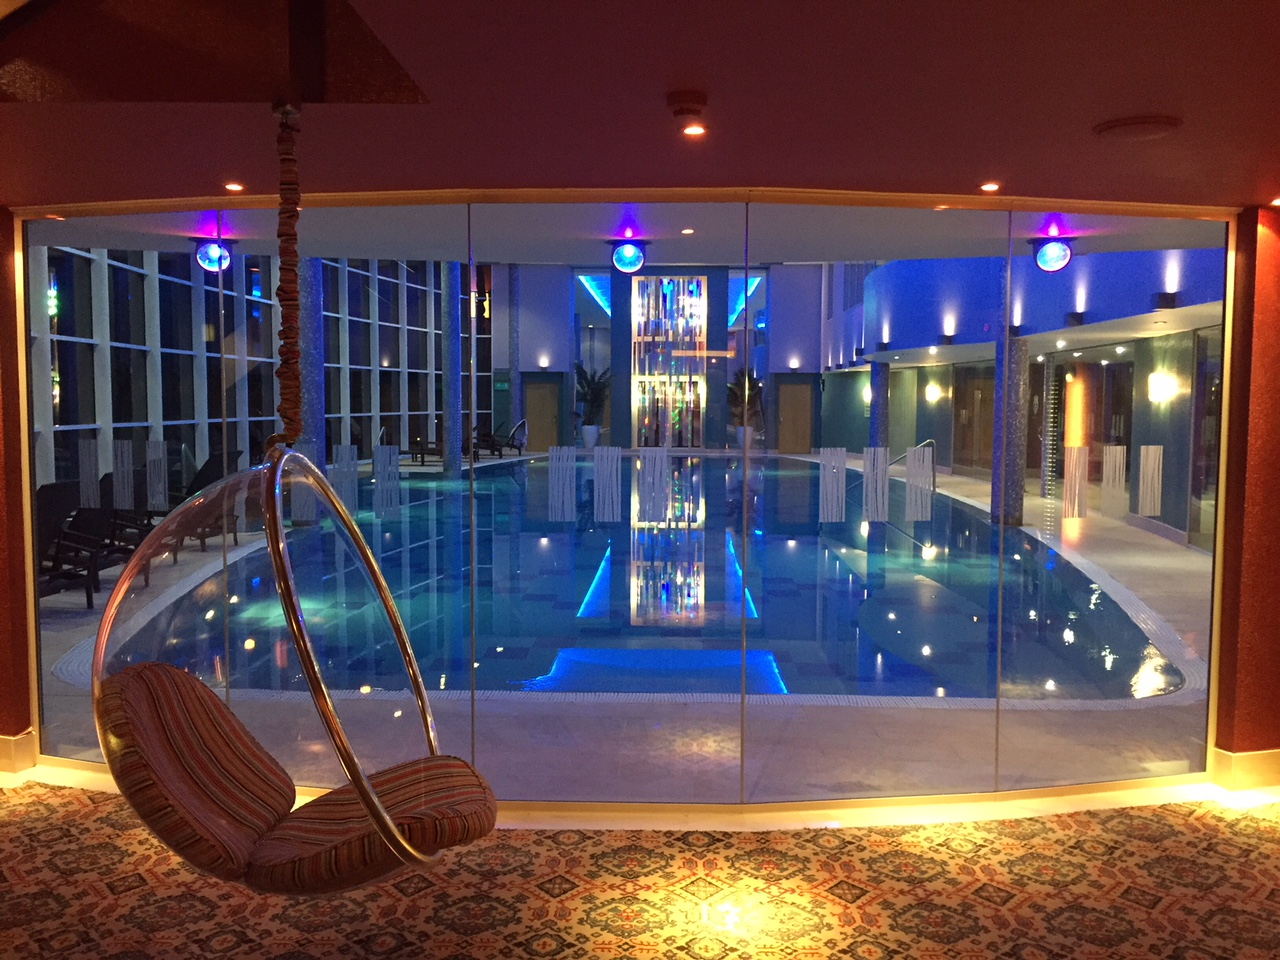 Stobo castle luxury spa review - Hotels with swimming pools in scotland ...